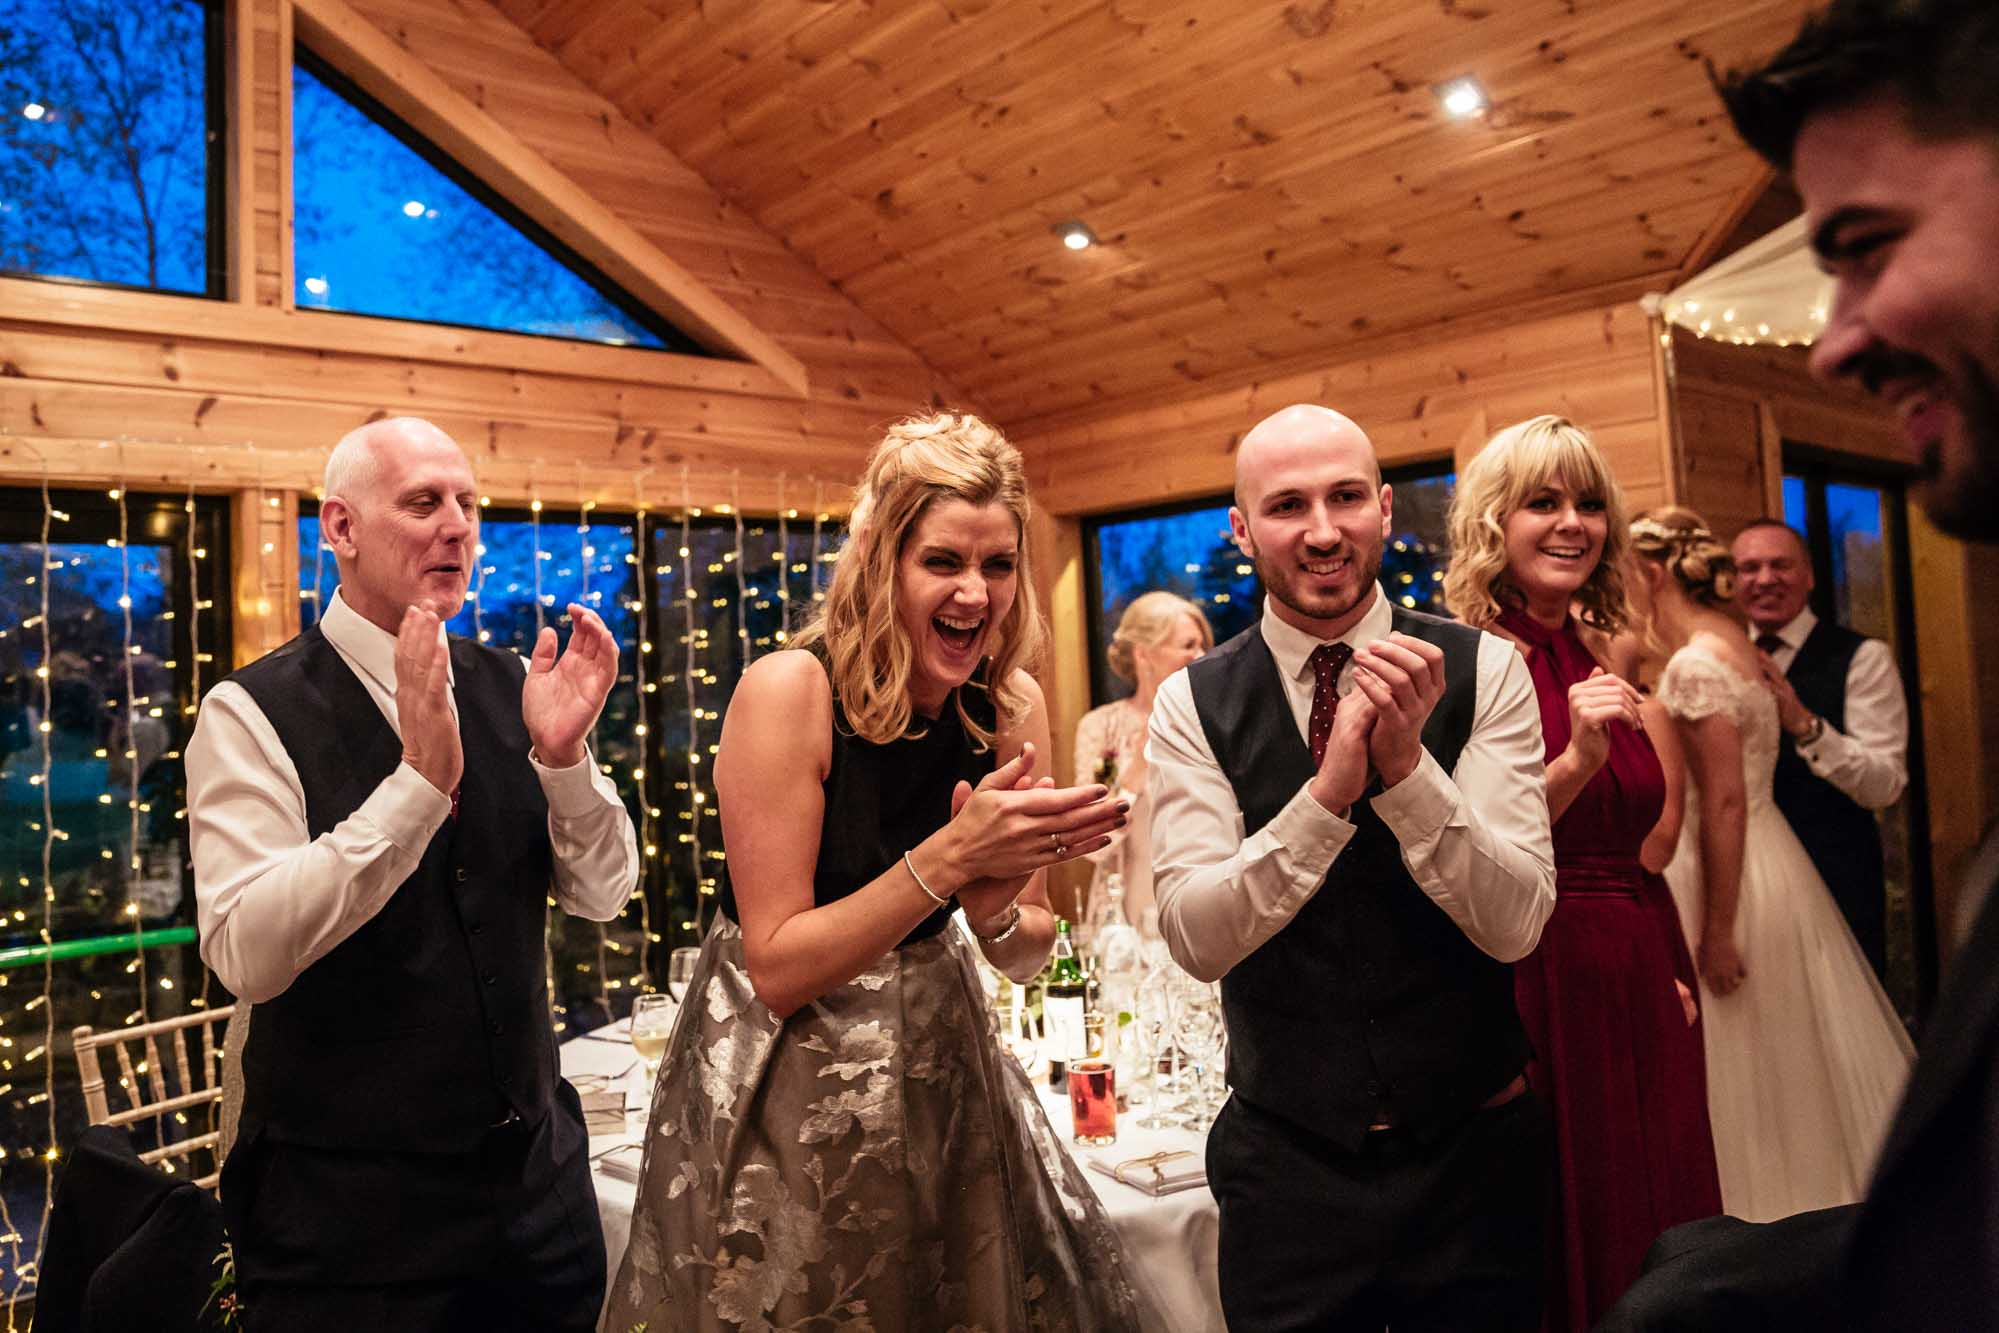 Styal Lodge Wedding Reception Photo